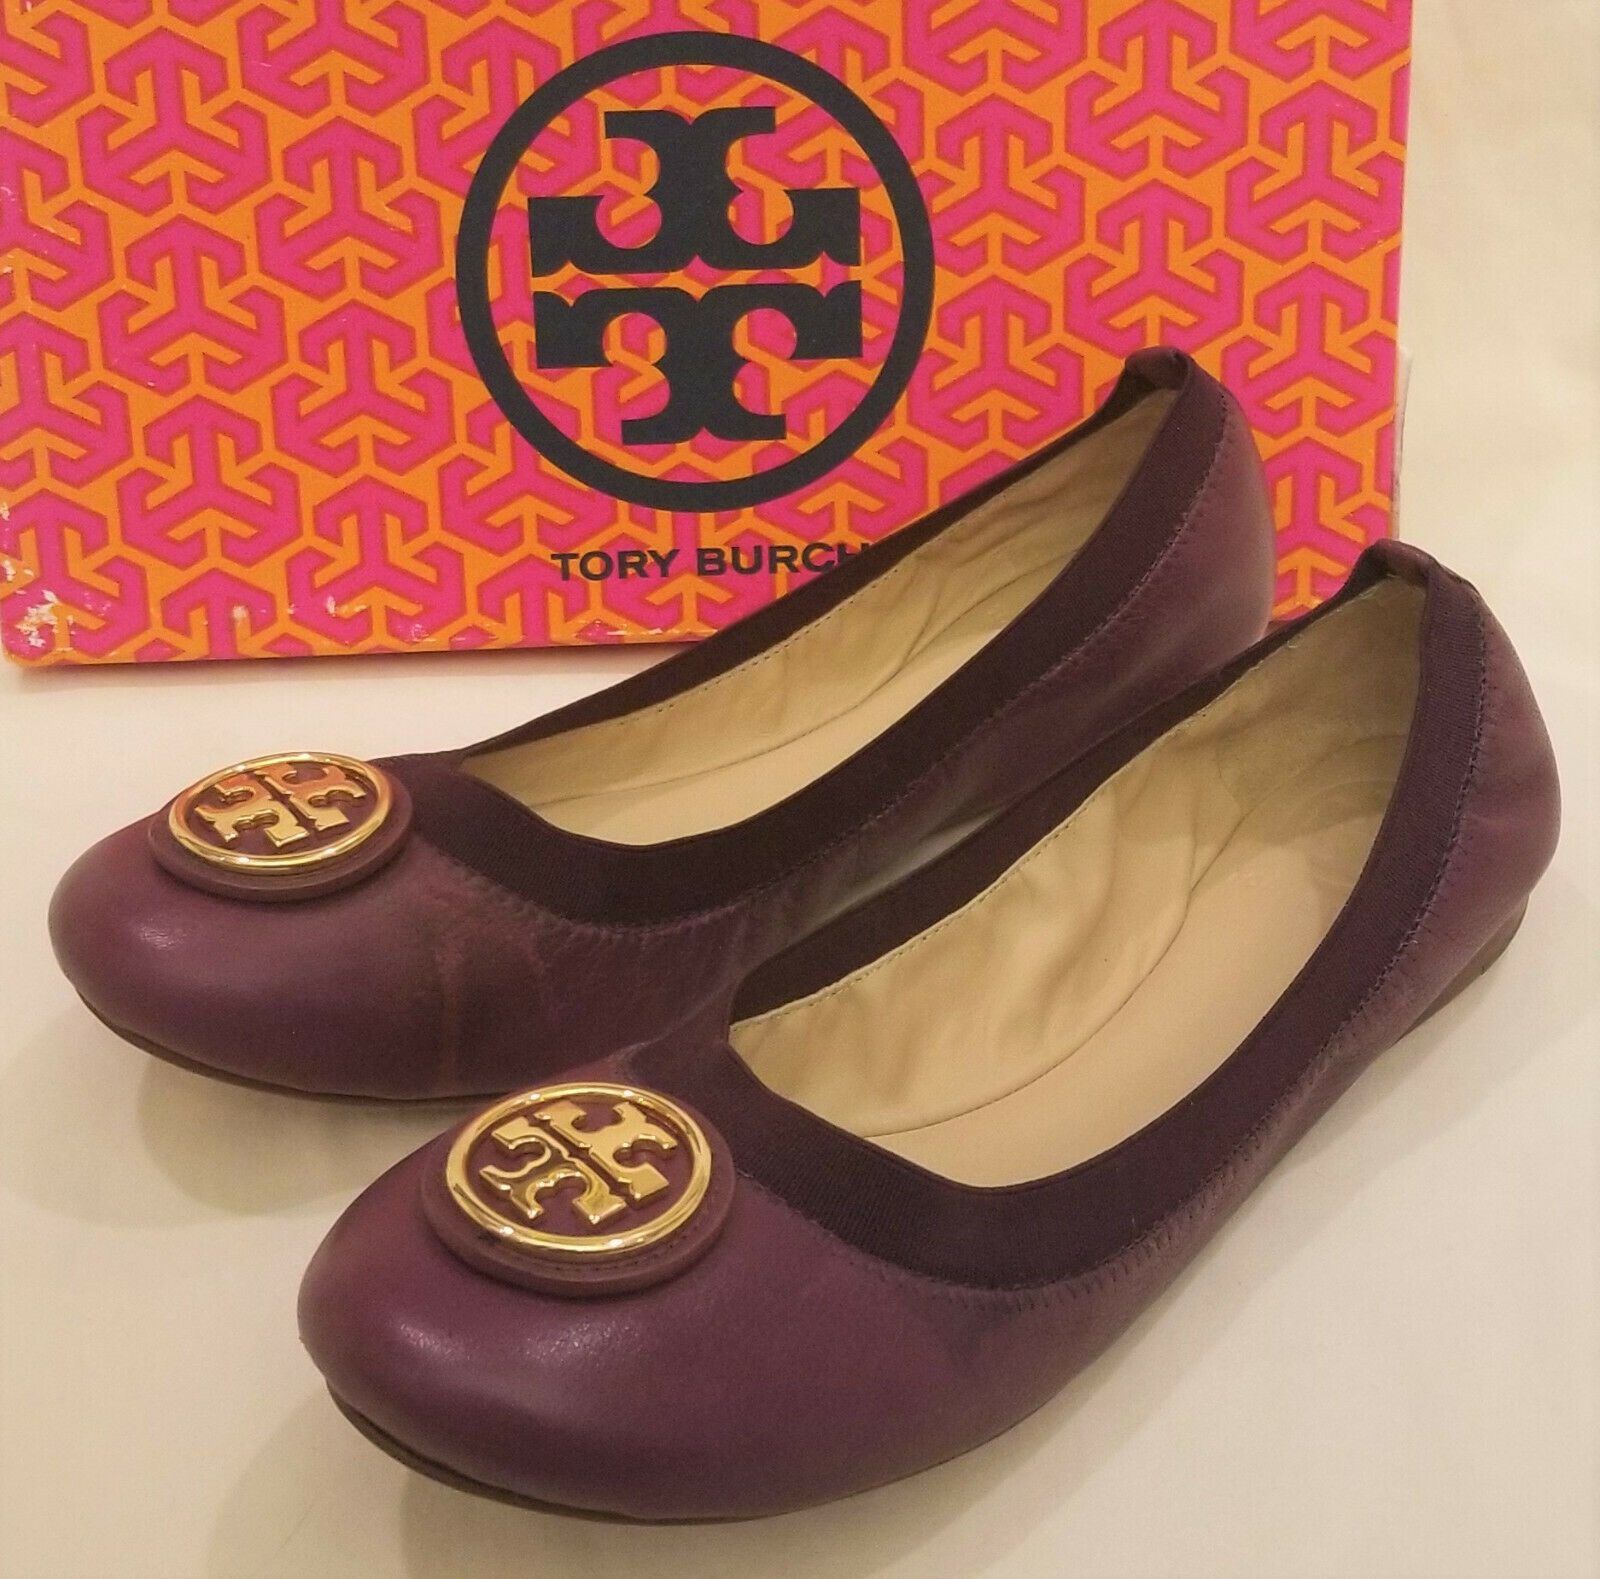 Tory Burch Comfort Flats Sz- 9.5M Gold Metal Tory Burch Accent Leather Wild Plum